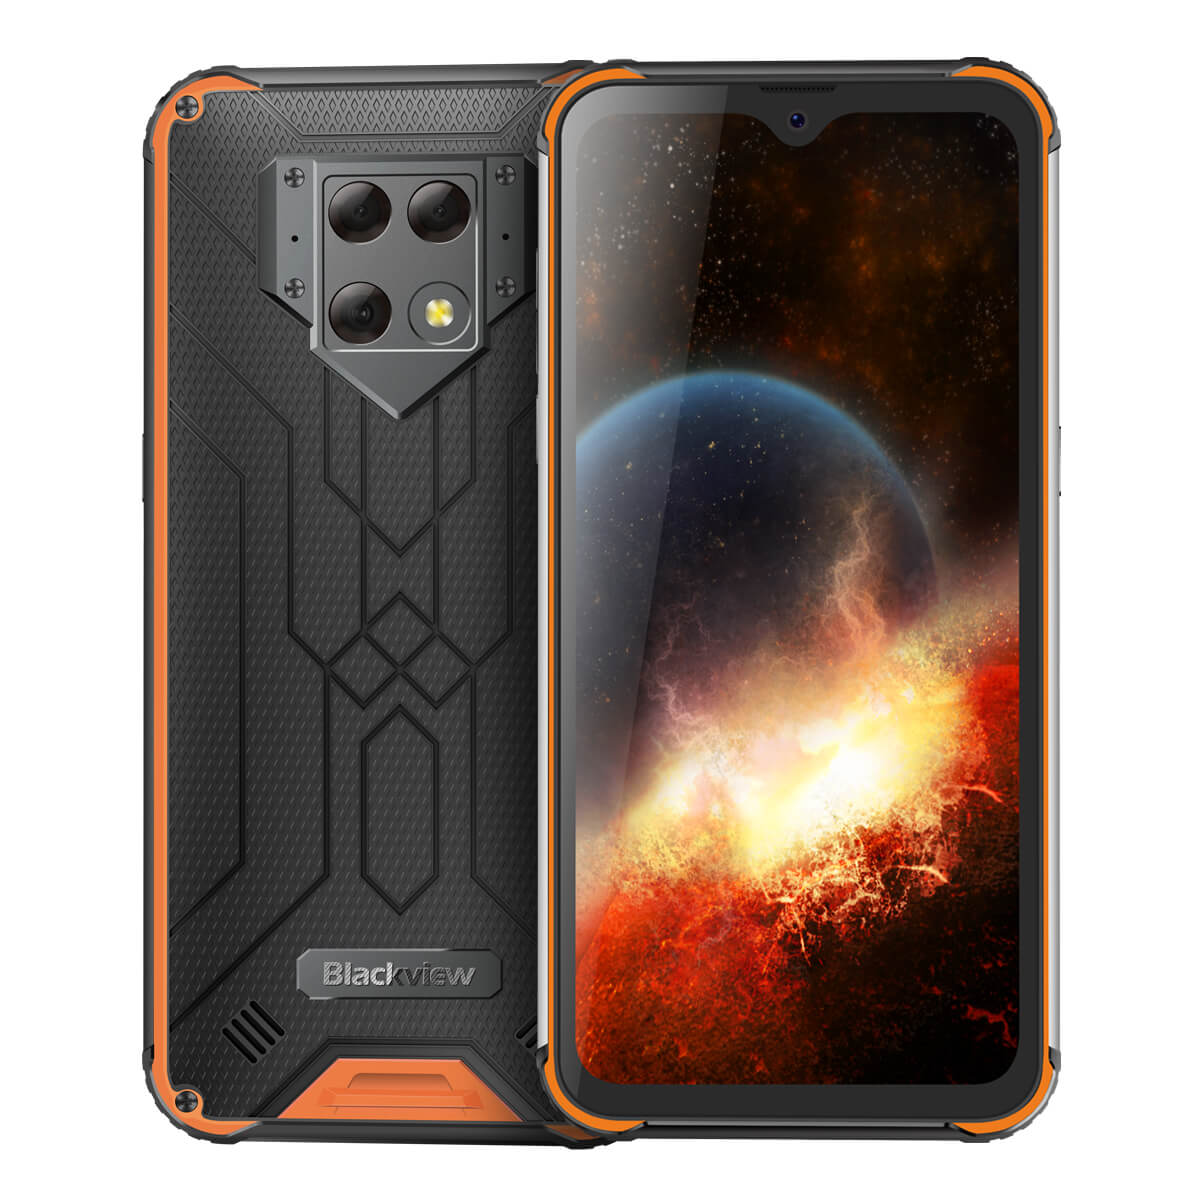 Rugged SA Blackview BV9800 Rugged Phone